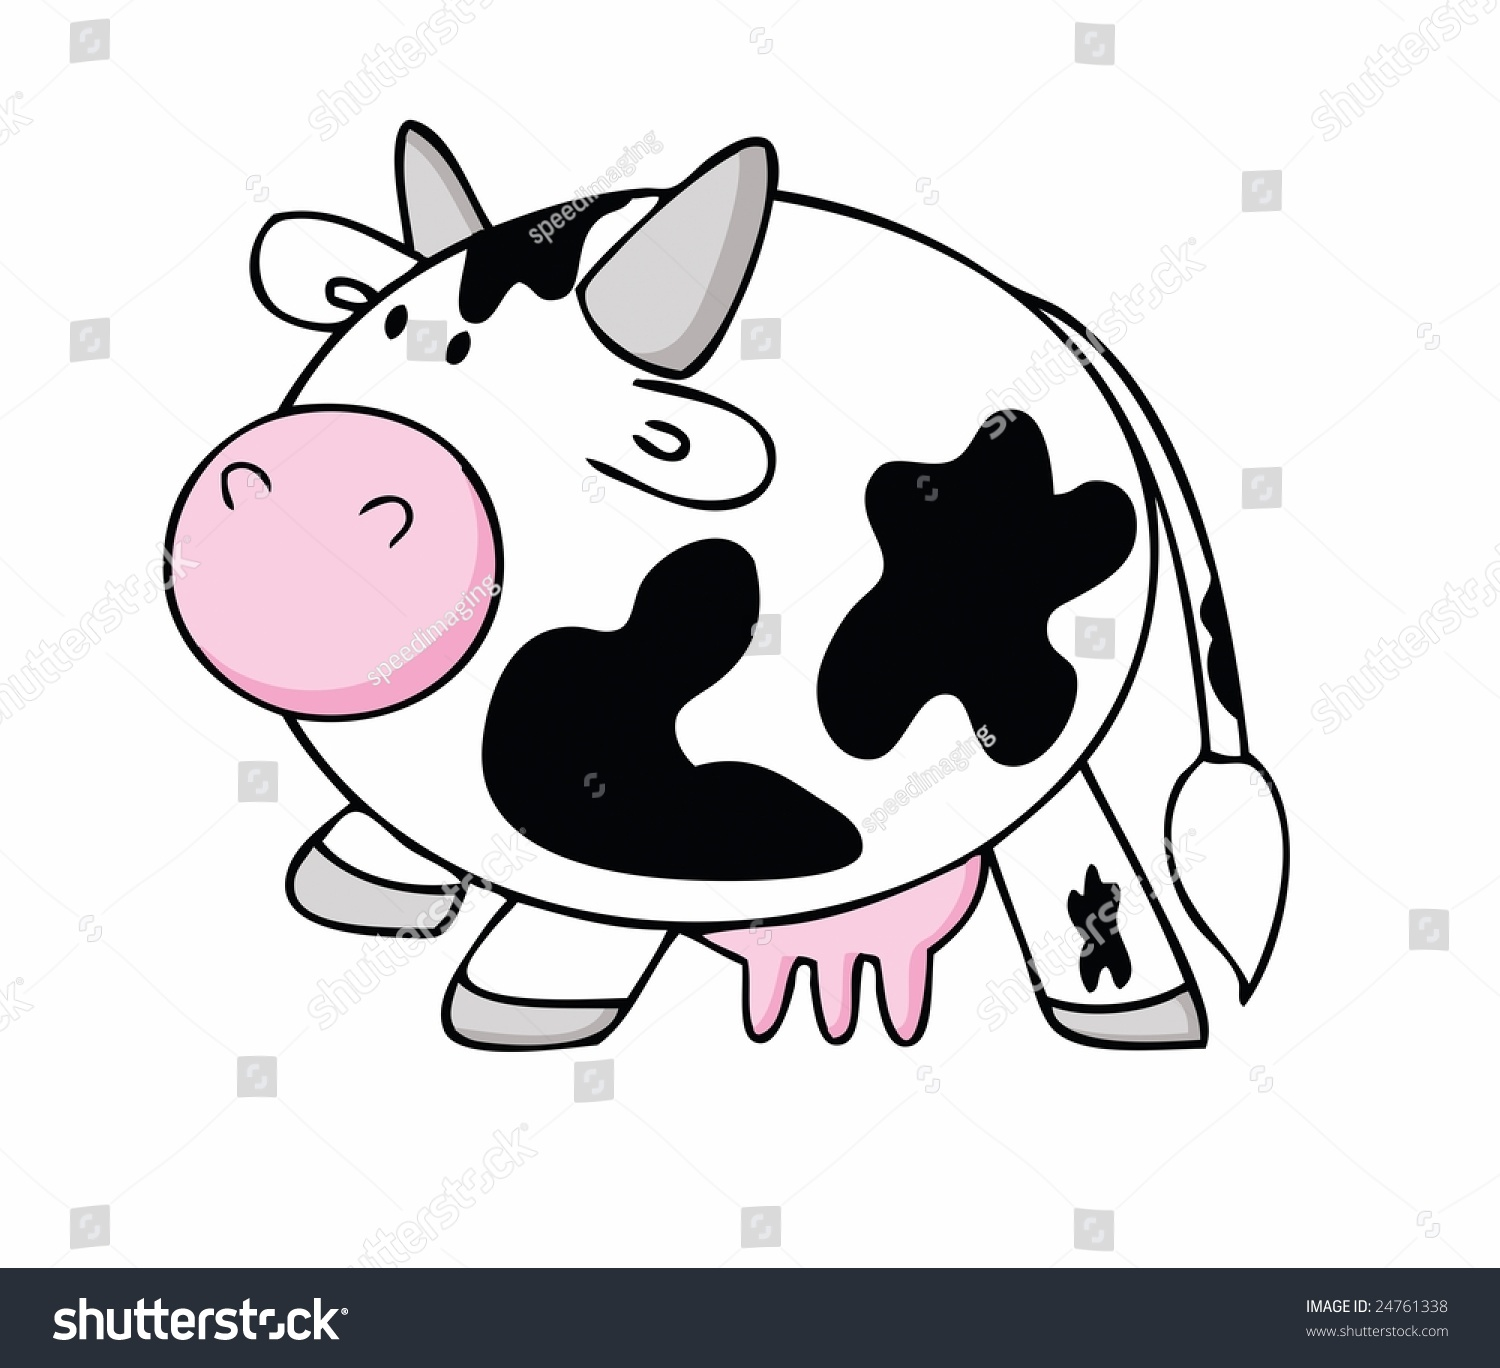 A fat cow with a fat ass 6